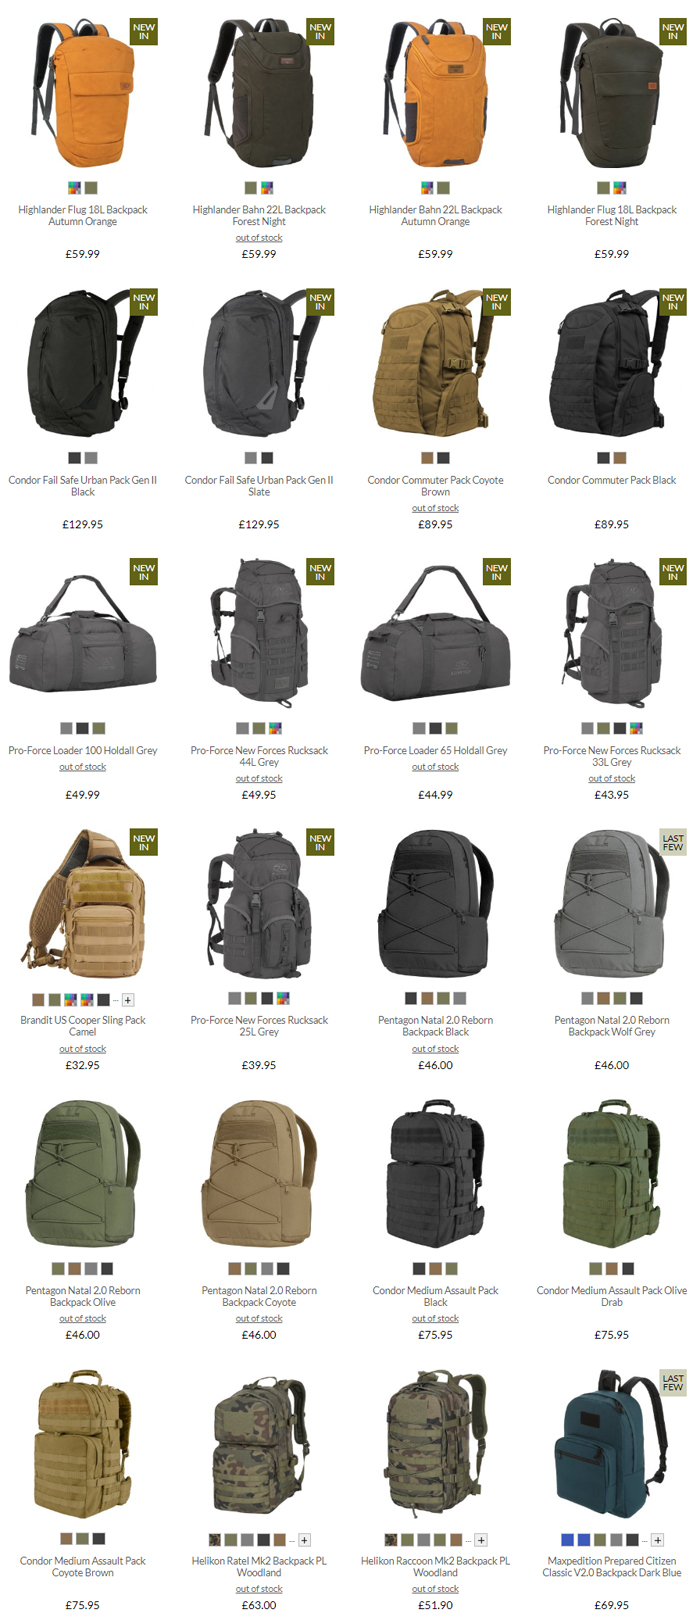 Military 1st Backpacks & Rucksacks Sale 2020 02